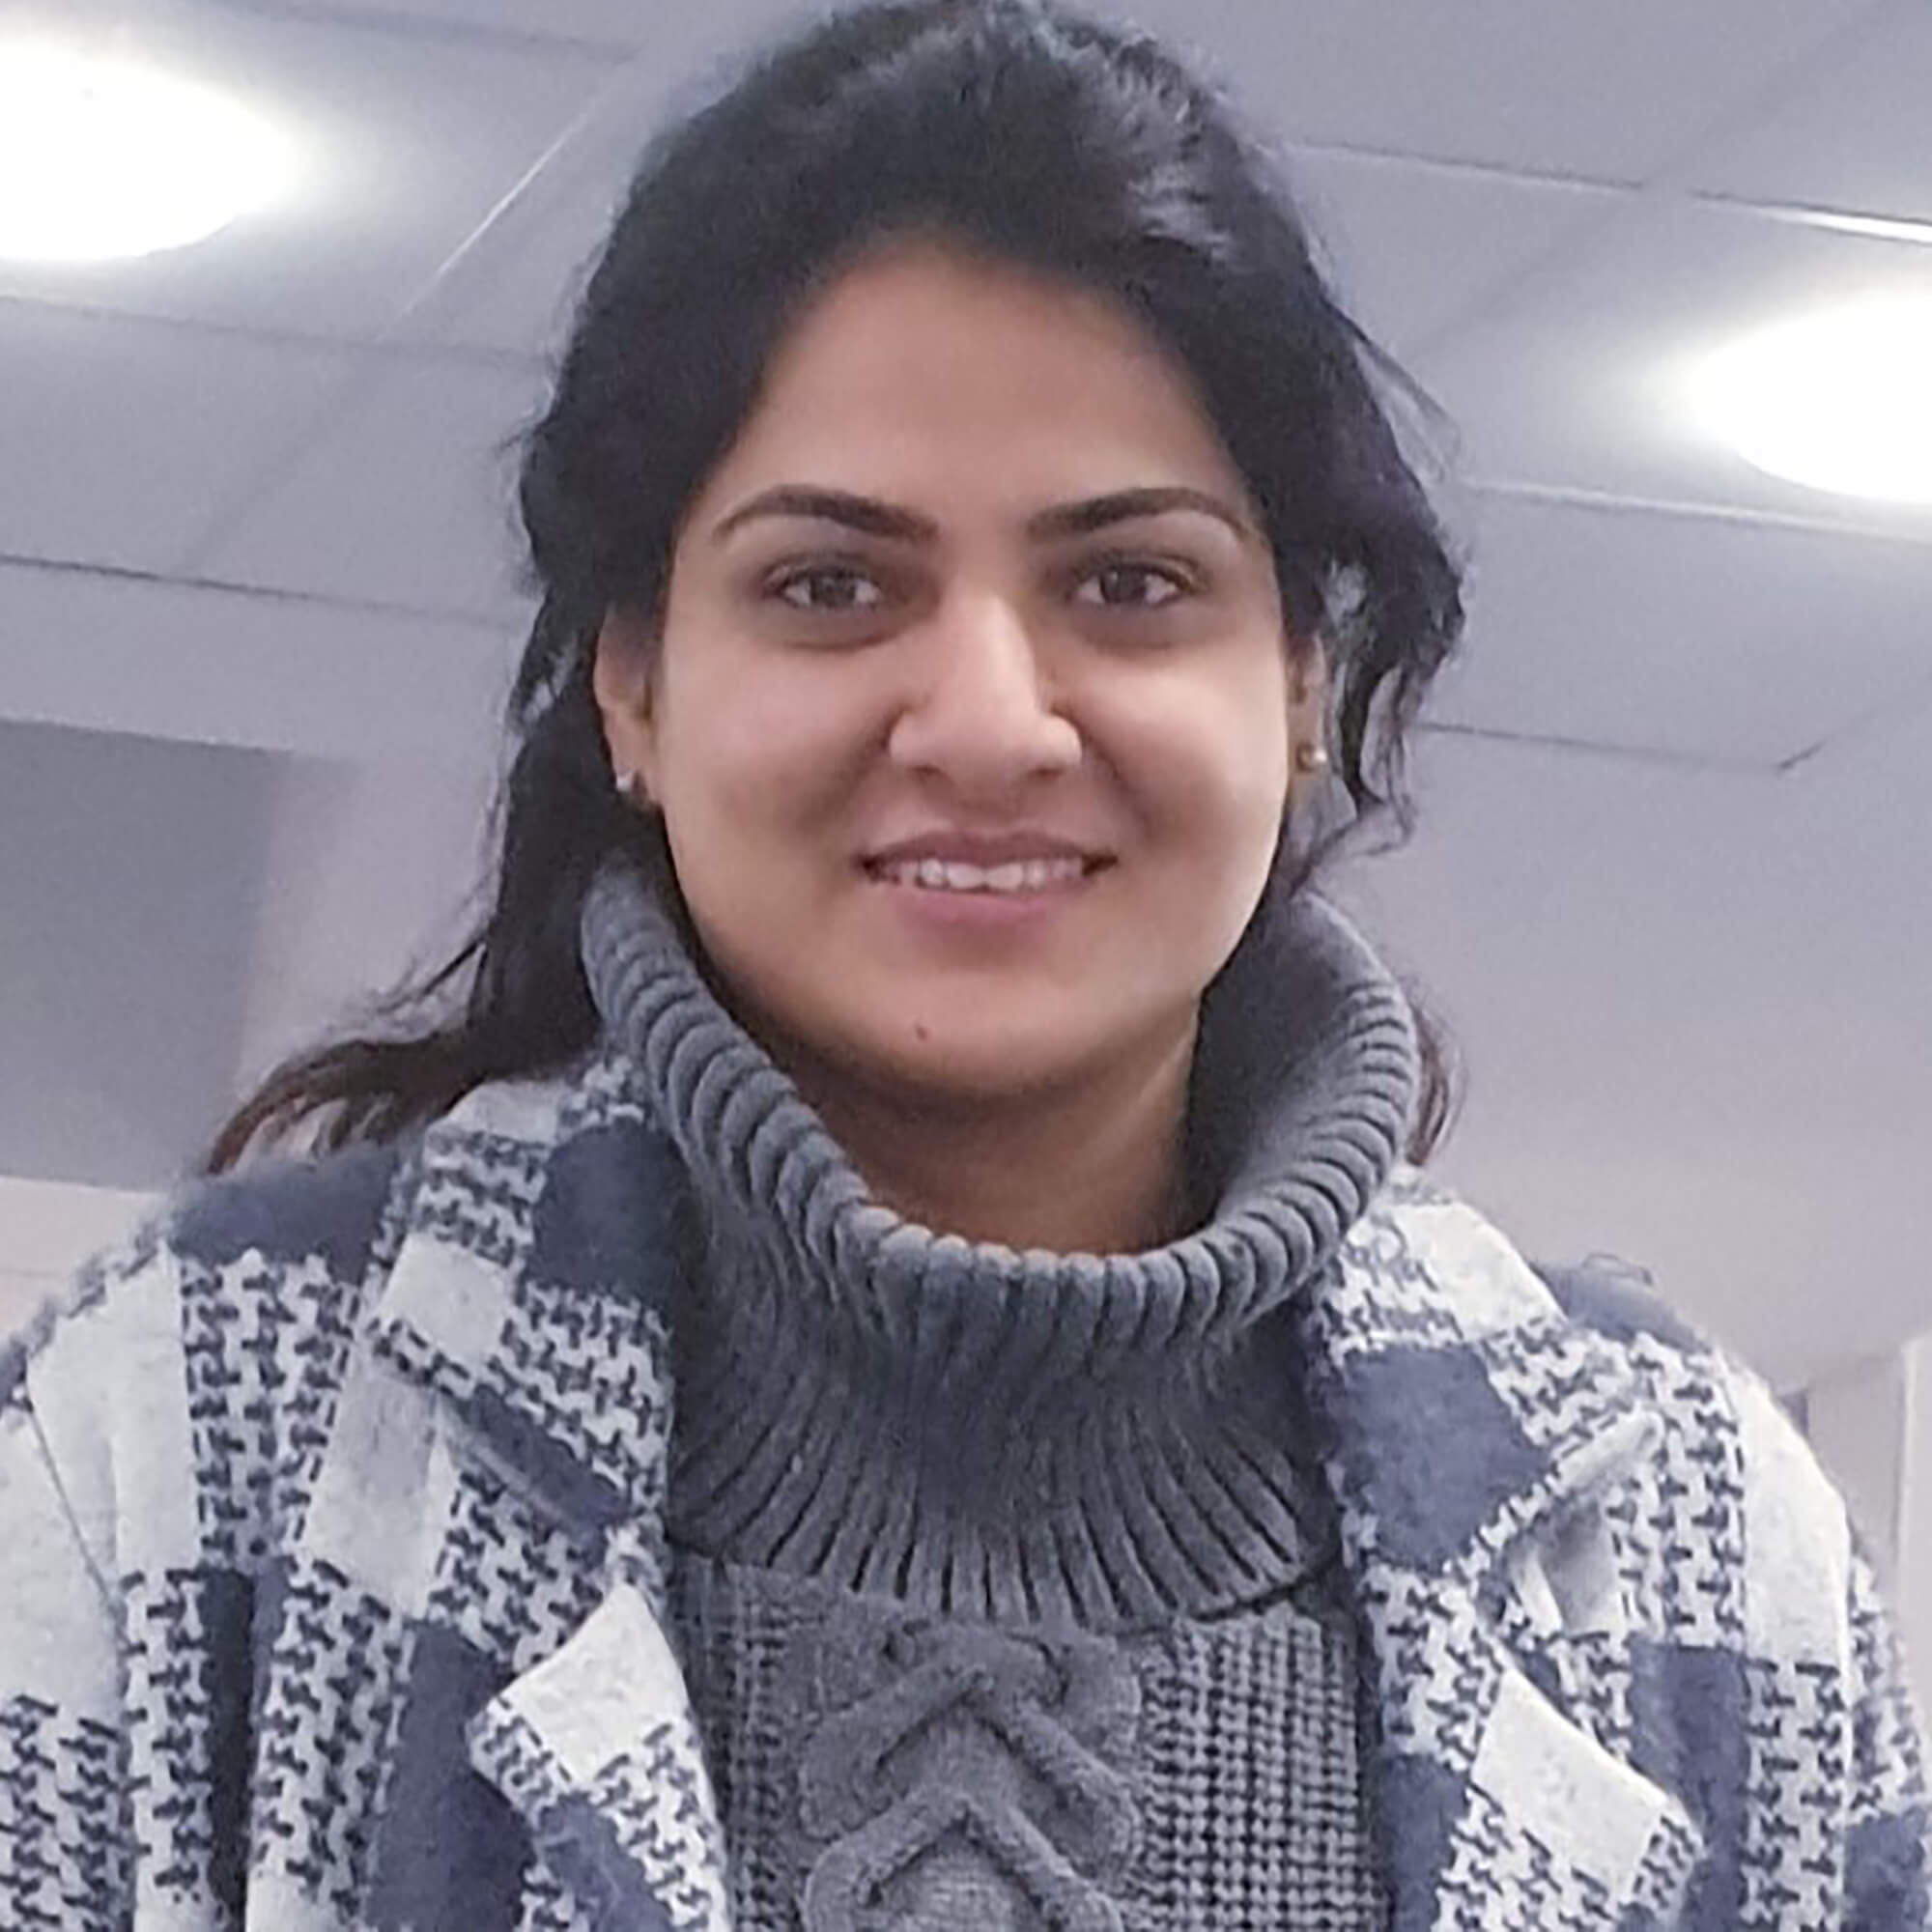 Rabia standing inside a classroom, smiling